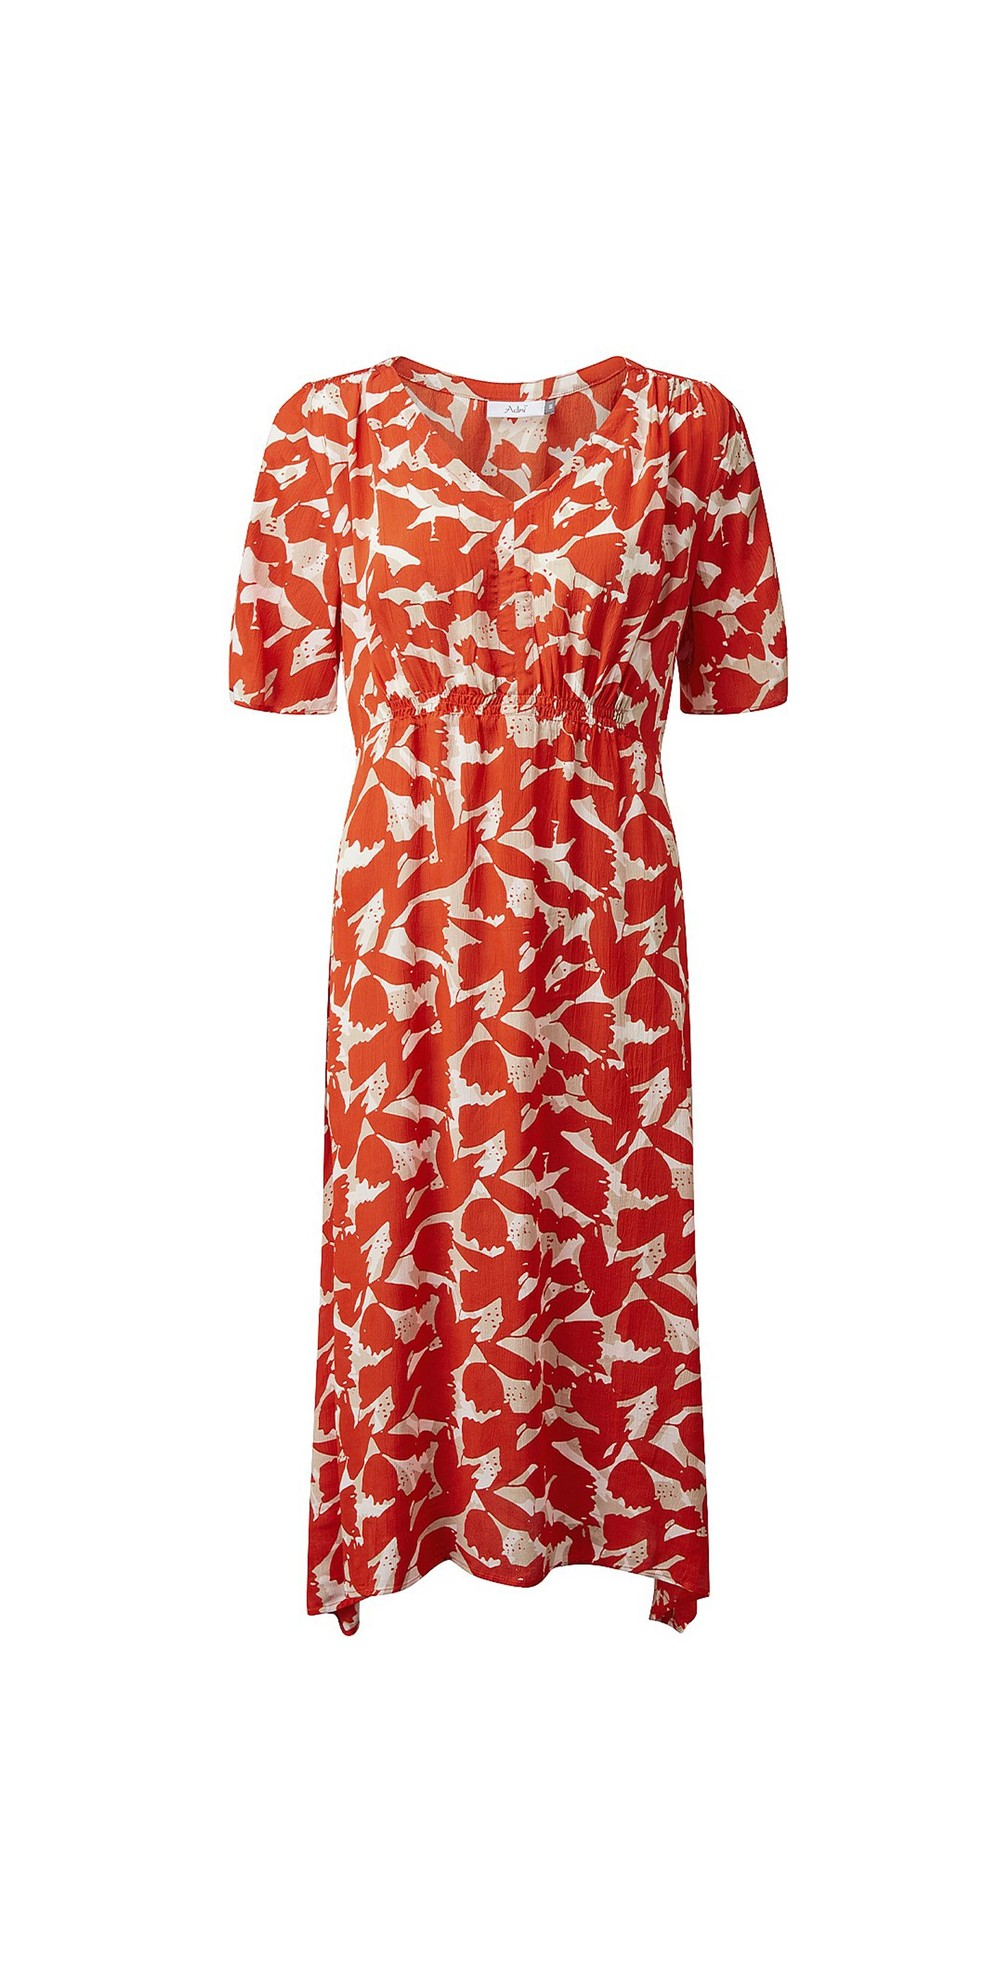 Cuba Calypso Print Dress main image